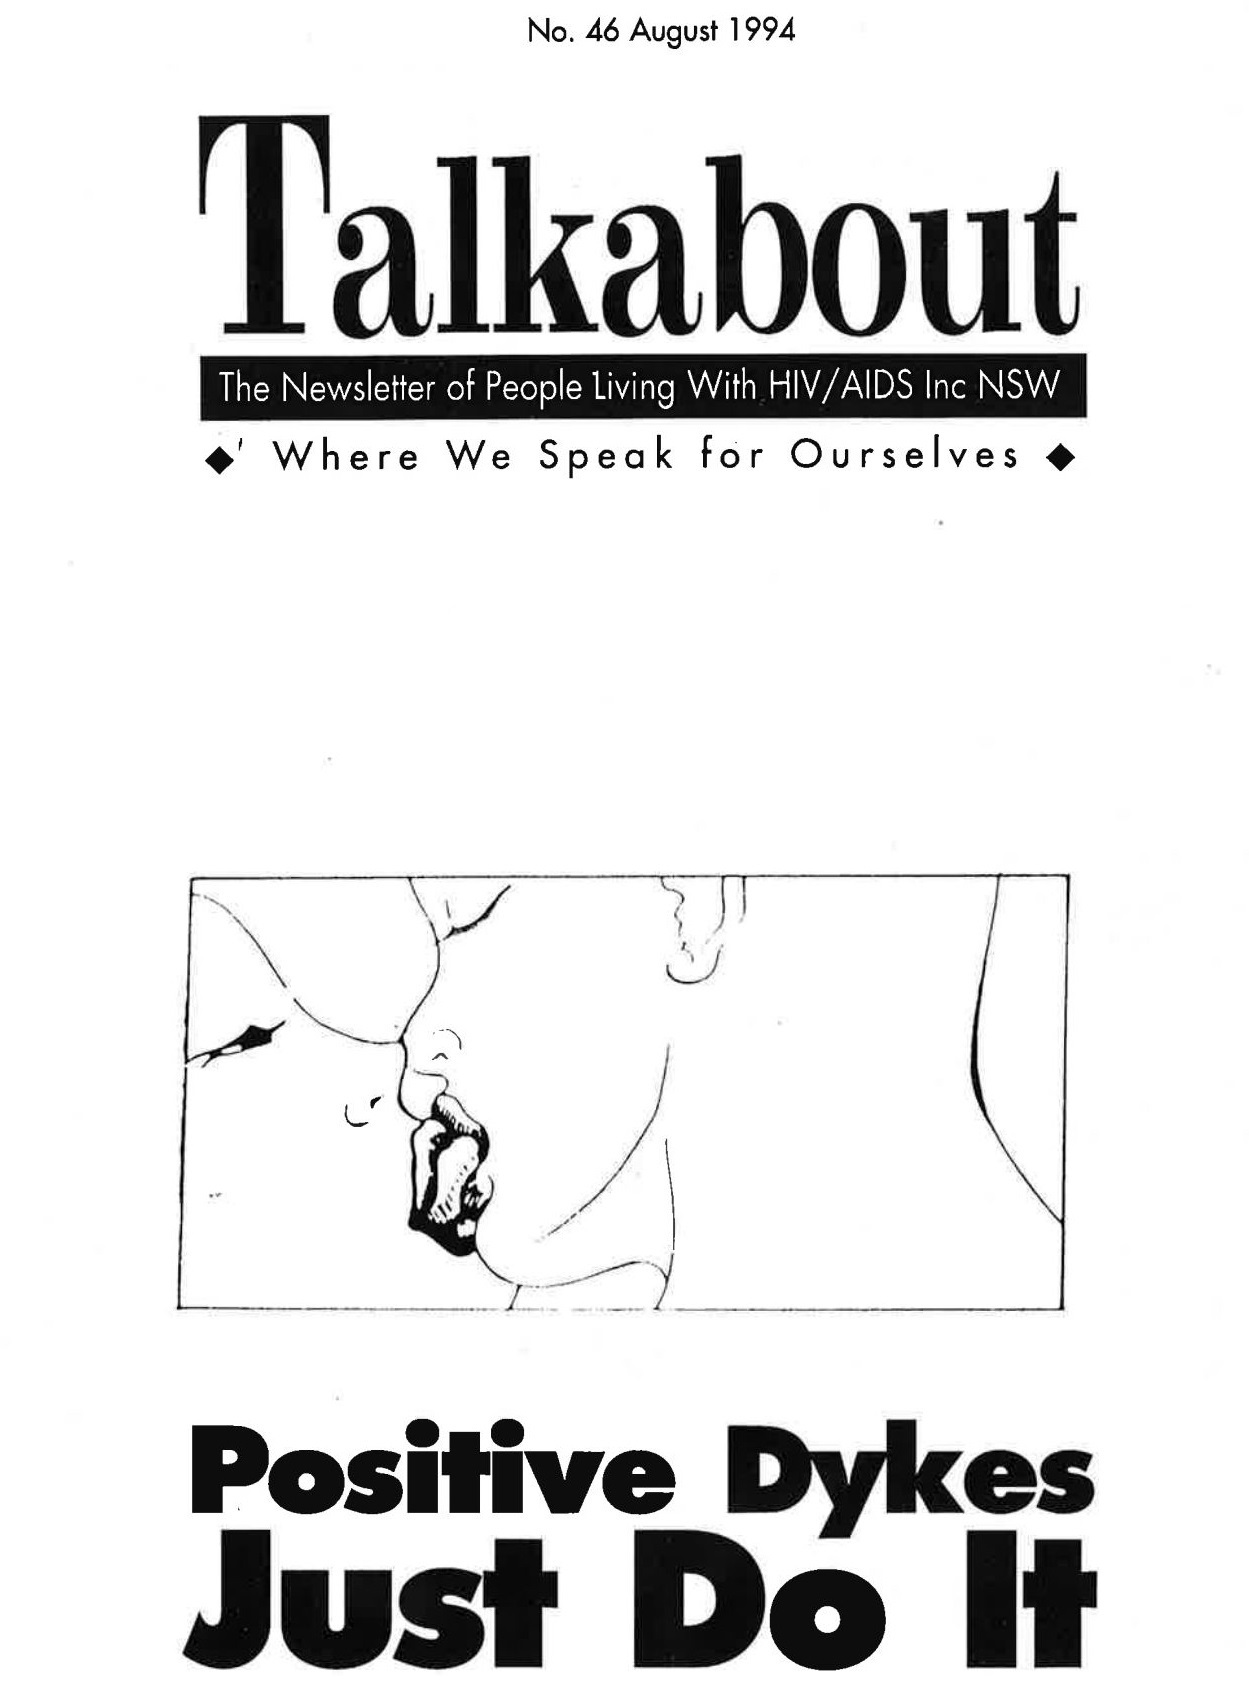 Talkabout Edition #46